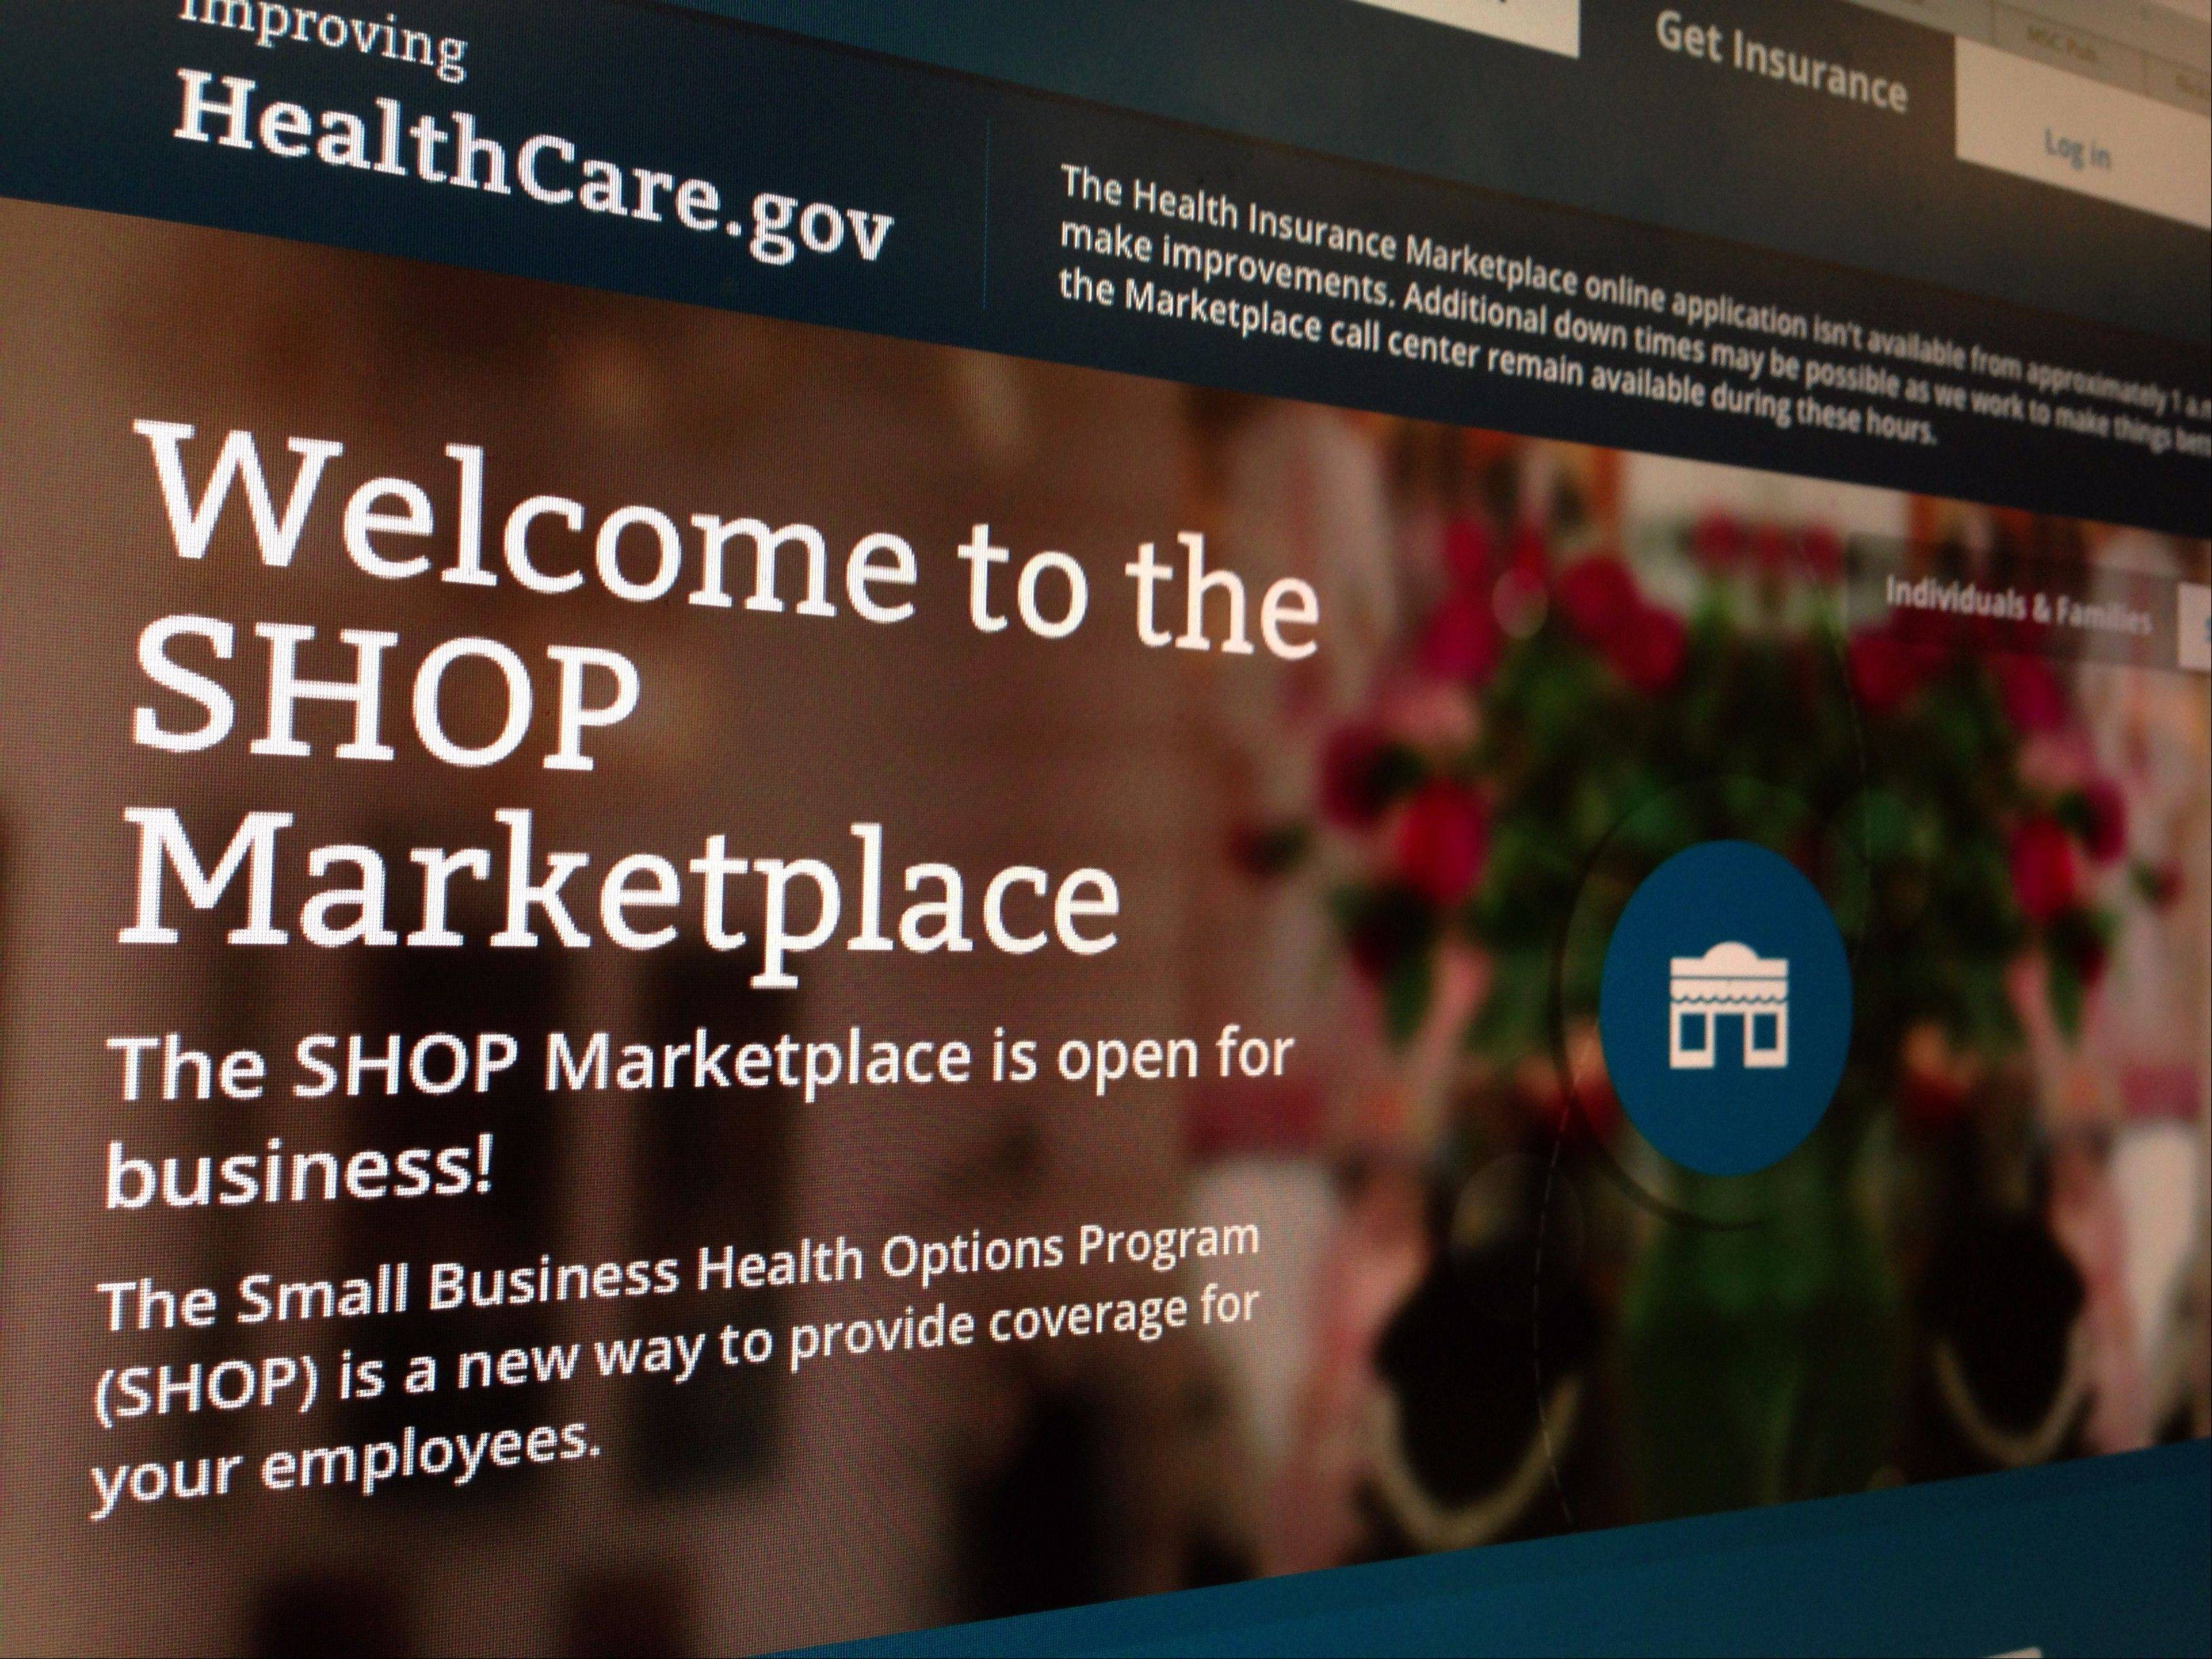 ASSOCIATED PRESS Administration officials announced Sunday that they had met their Saturday deadline for improving HealthCare.gov after completing a series of hardware upgrades and software fixes to the troubled Web site.